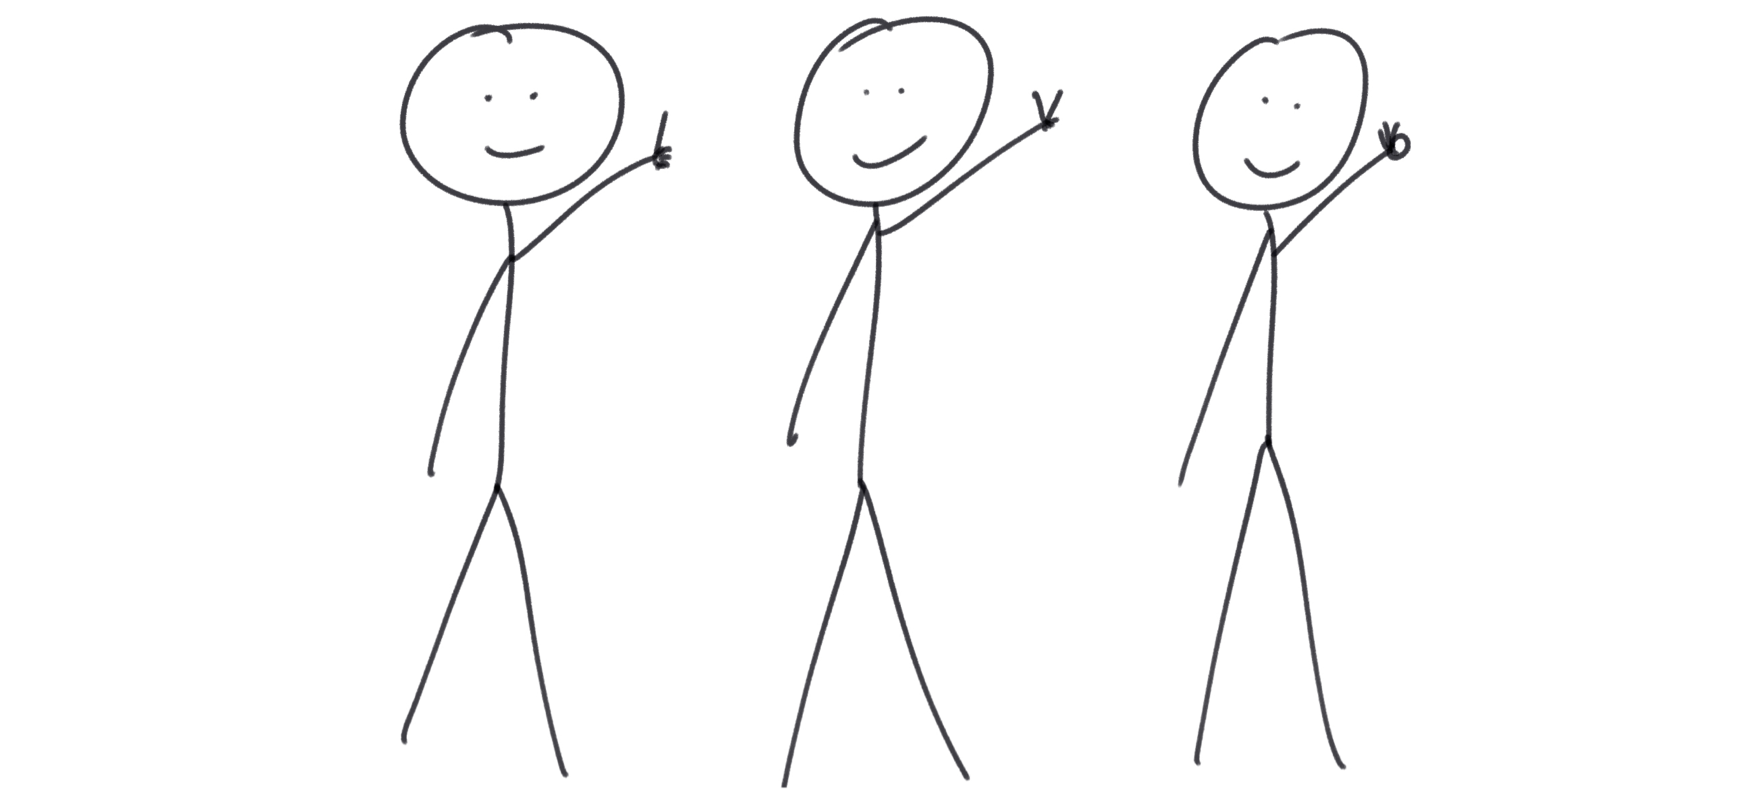 Stick figures counting 1, 2, 3.